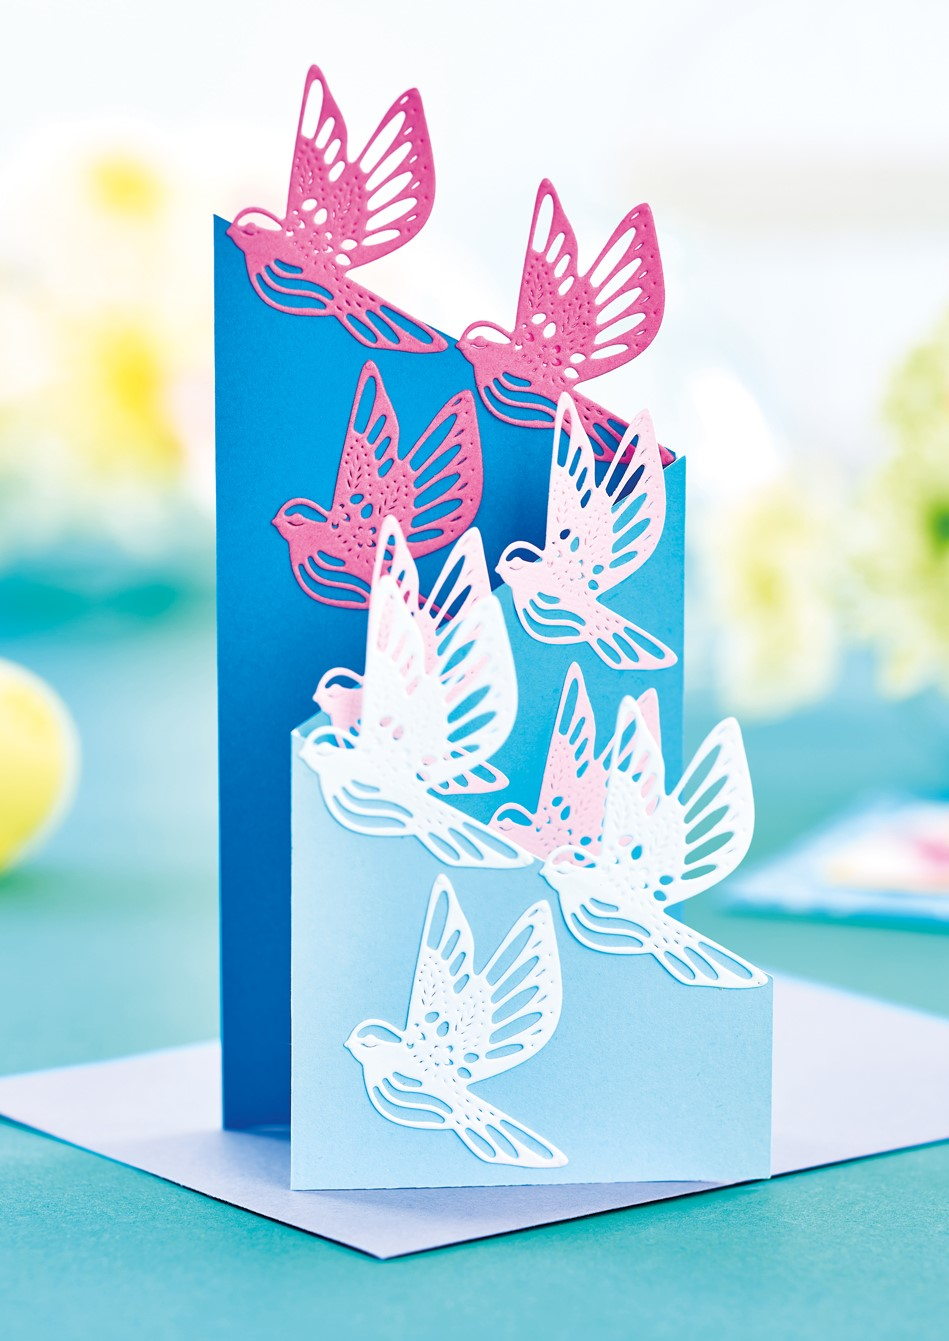 3 Designs of Cute Crafts Using Paper Bags Flipboard Crafts To Make With Old Paper Bags